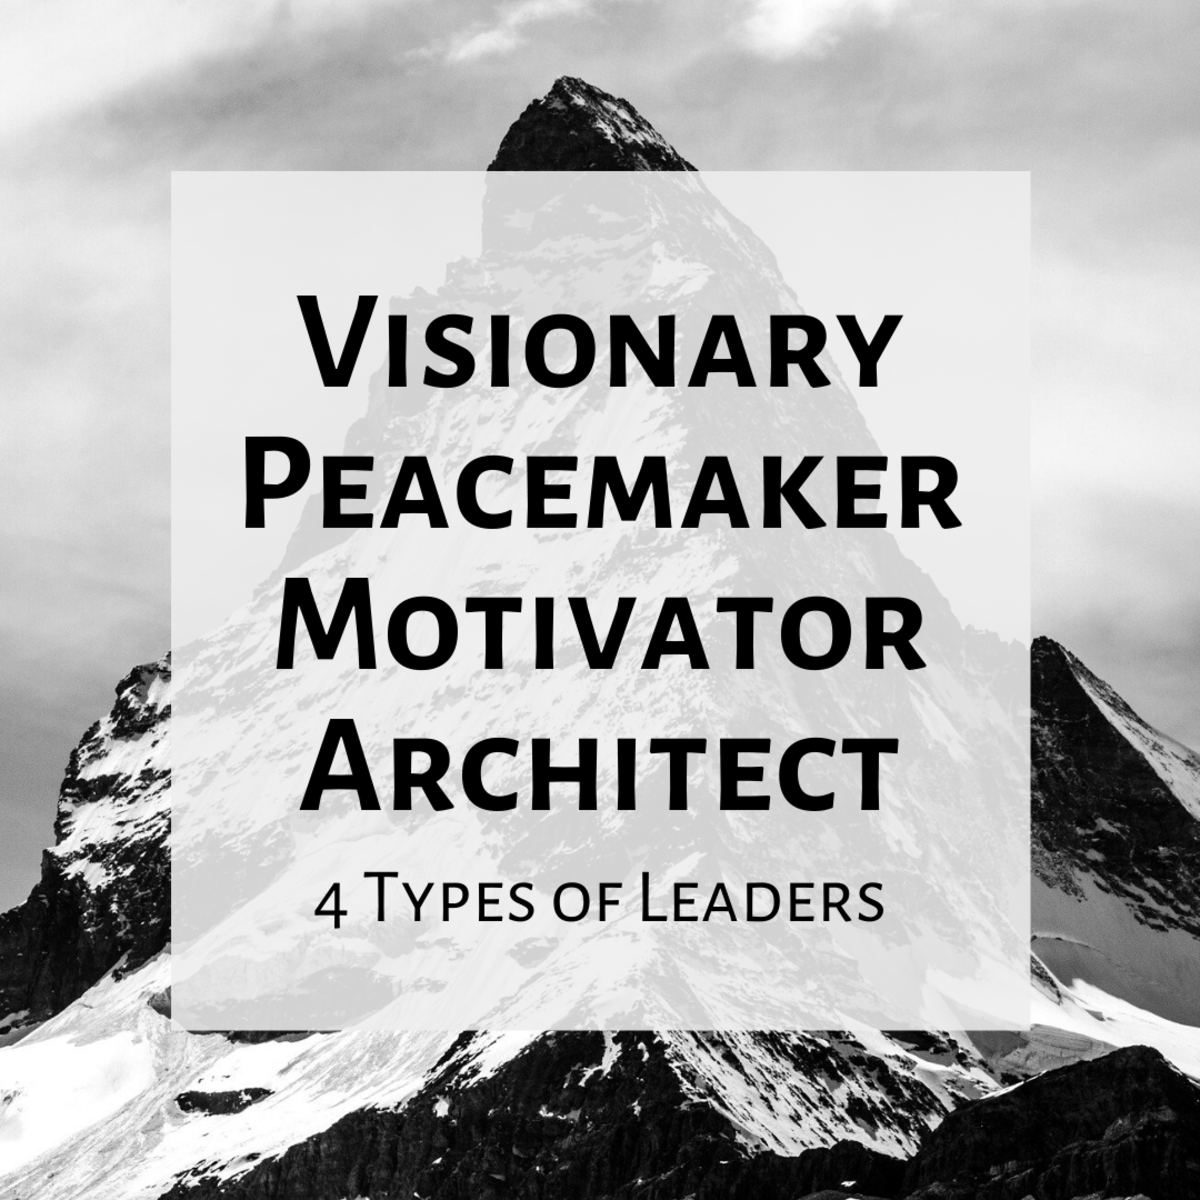 Learn about the four types of leaders and the personal qualities needed for leadership.